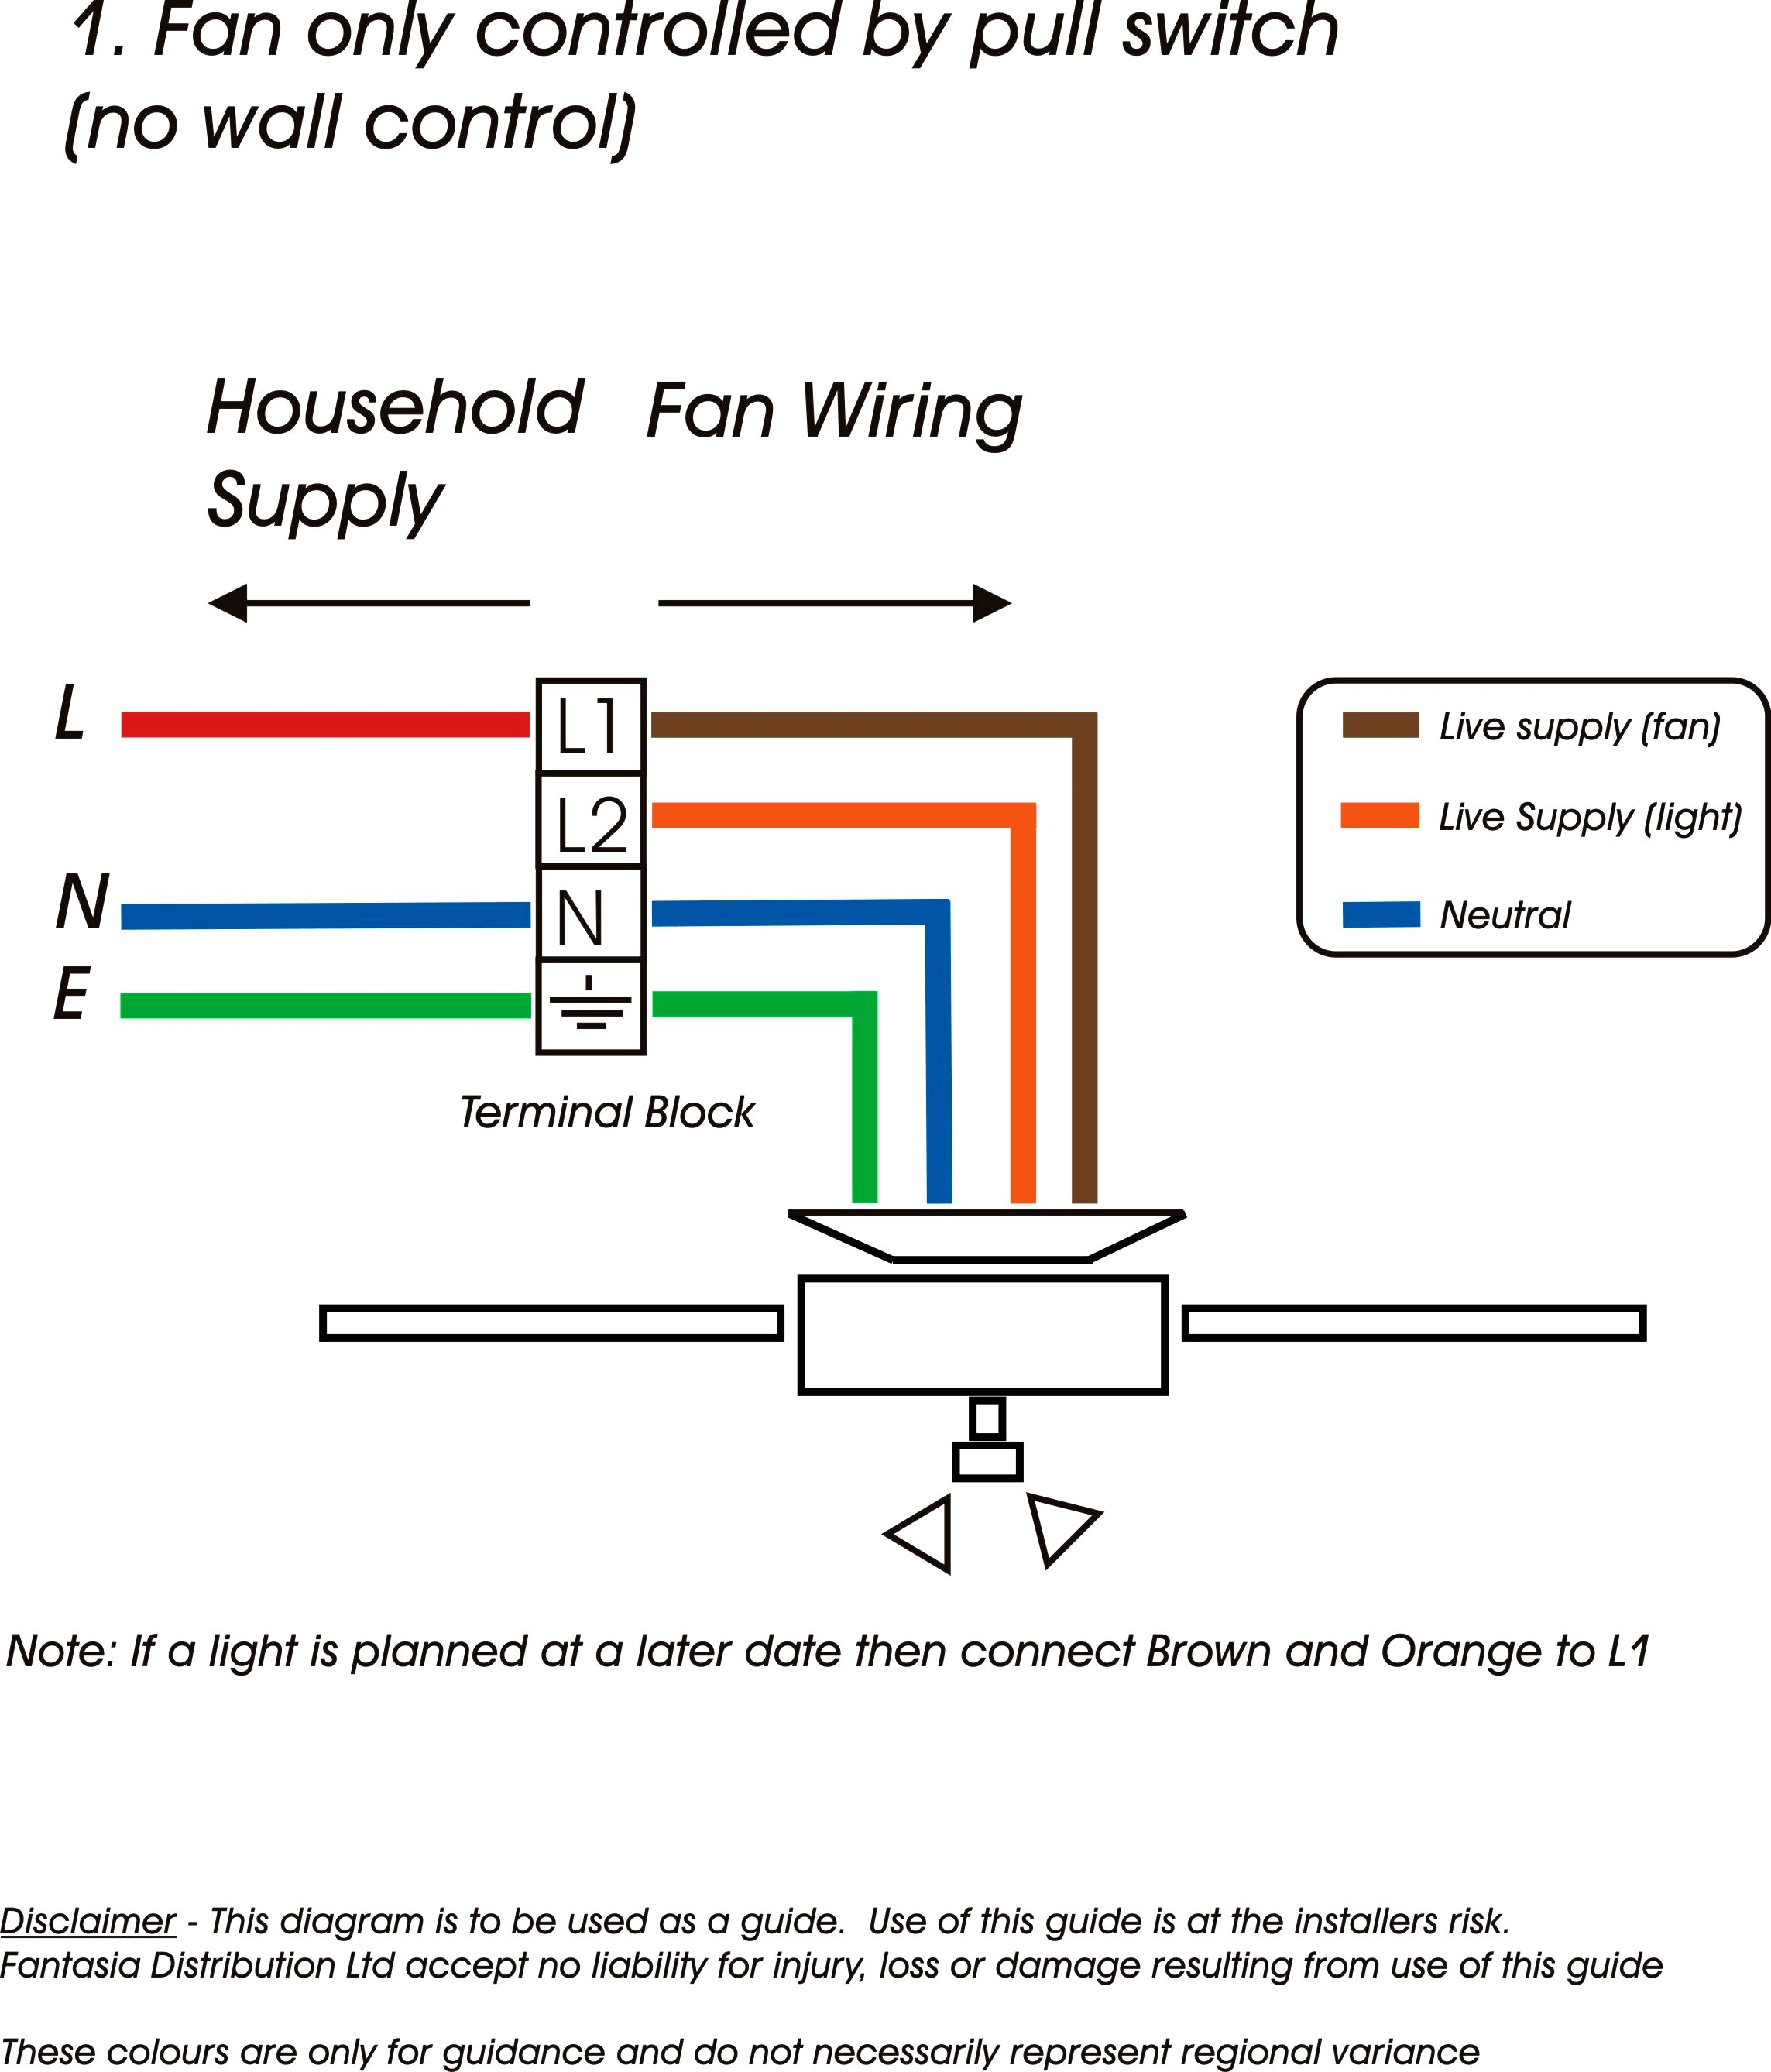 2 wire dc proximity sensor wiring diagram Collection-4 wire ceiling fan switch wiring diagram luxury 10 3 hastalavista me rh hastalavista me wiring a fan for heatilator novus wiring a fan for heatilator novus 7-l